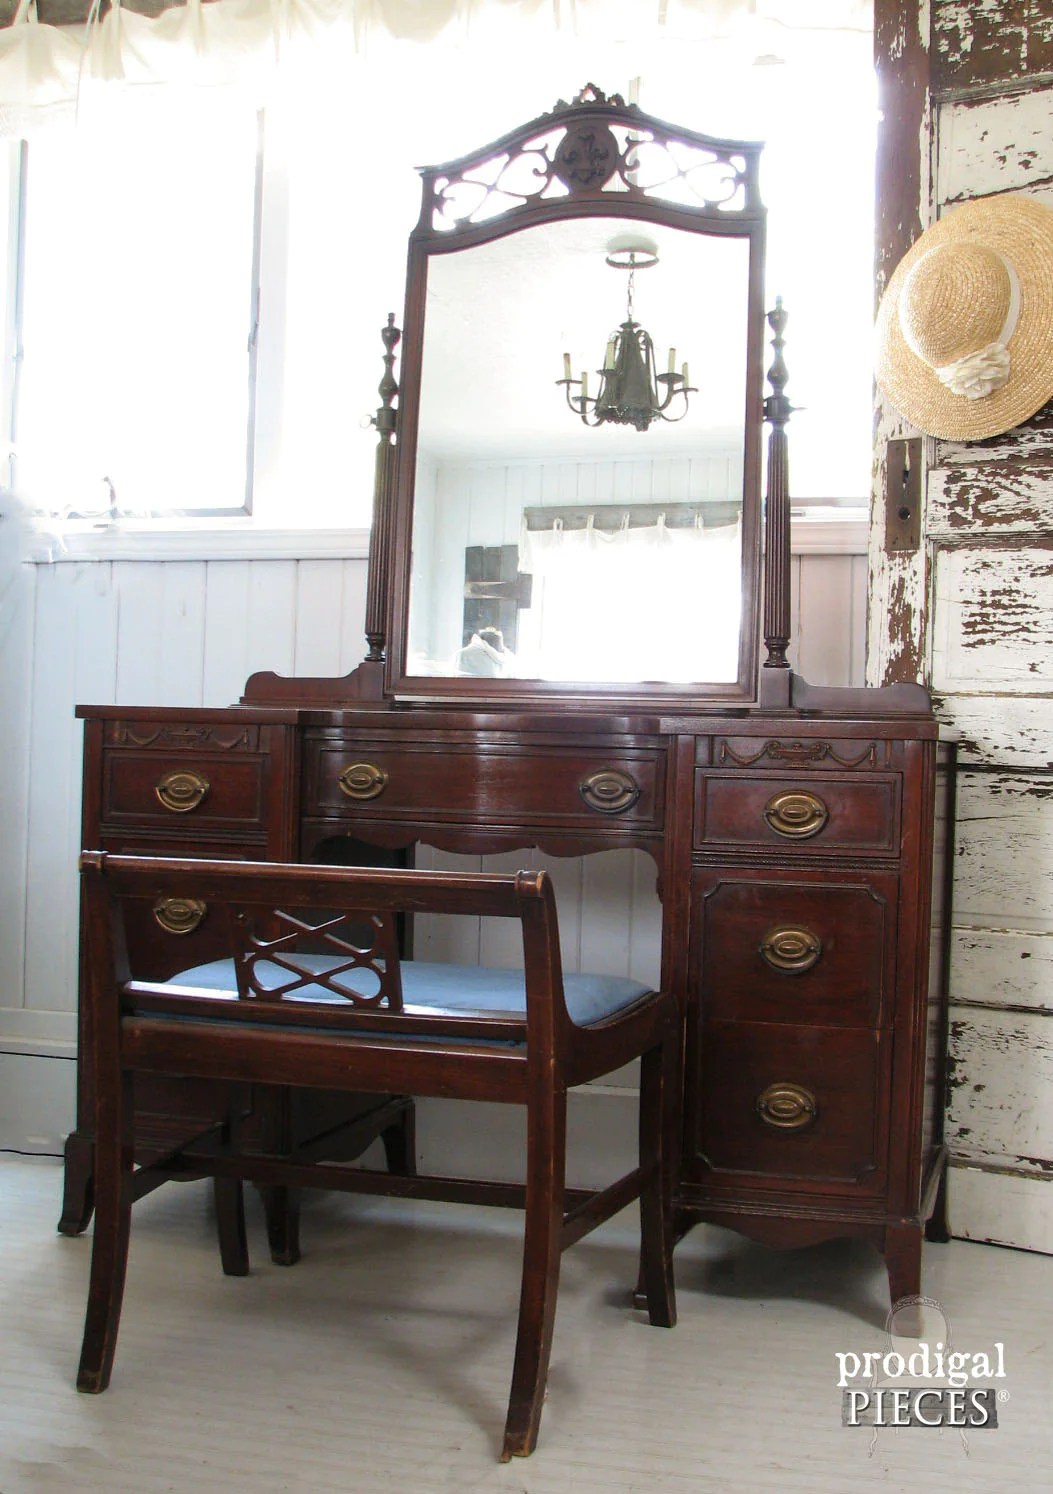 Ornate Vintage Dressing Table Vanity With Gorgeous Mirror Matching Upholstered Bench As Is